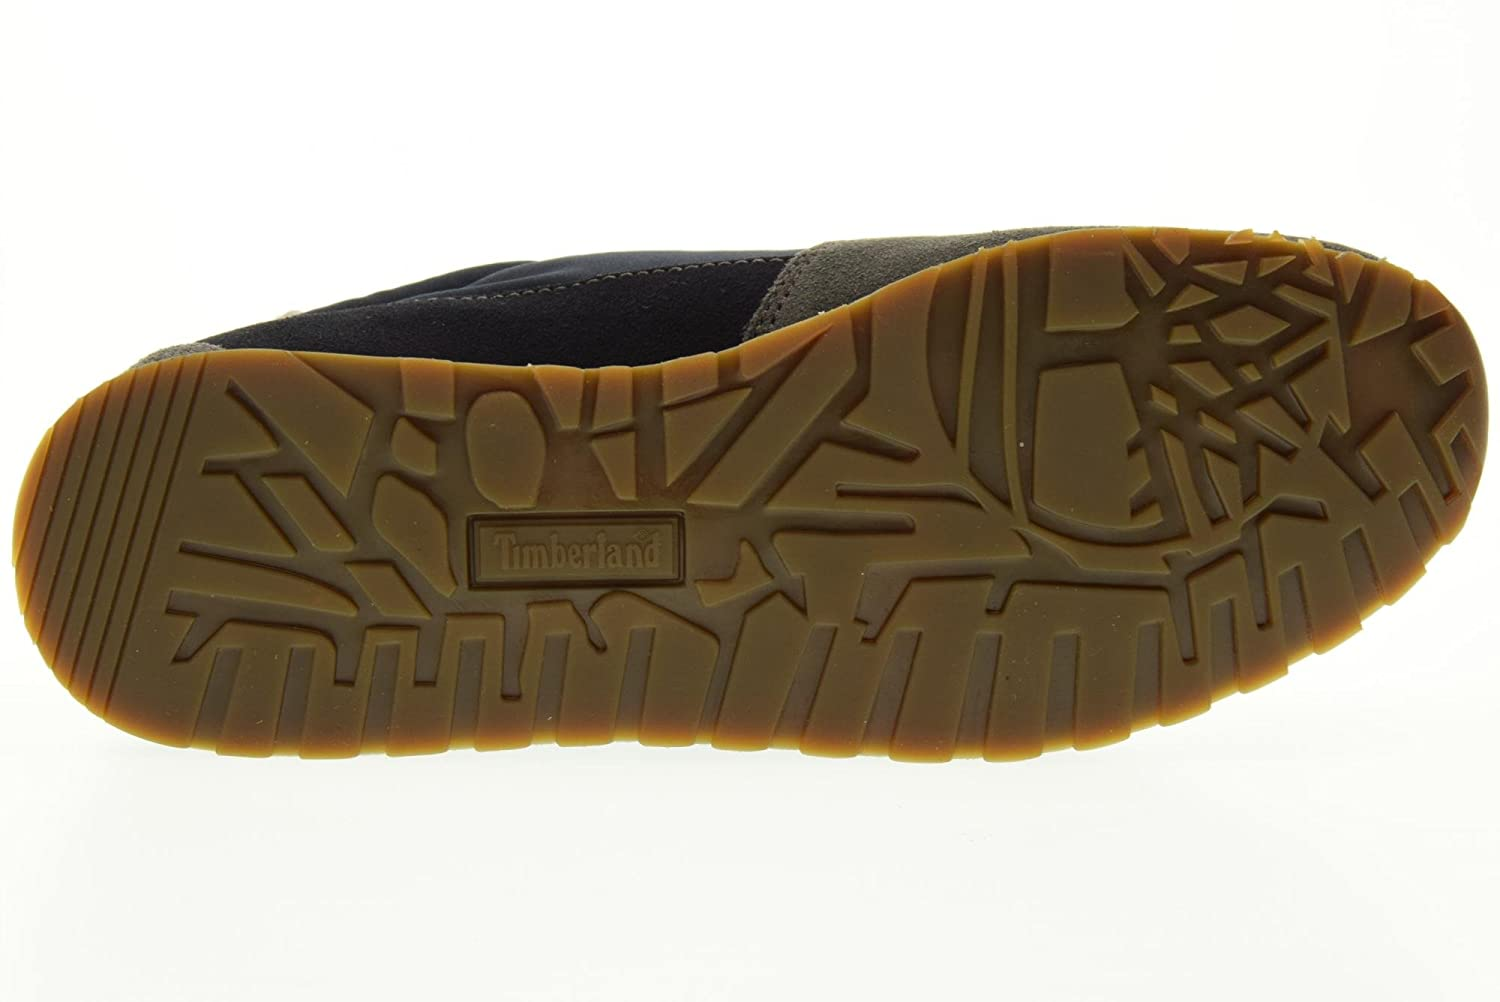 Chaussures Timberland De L'inde Amazone Srr5xbq